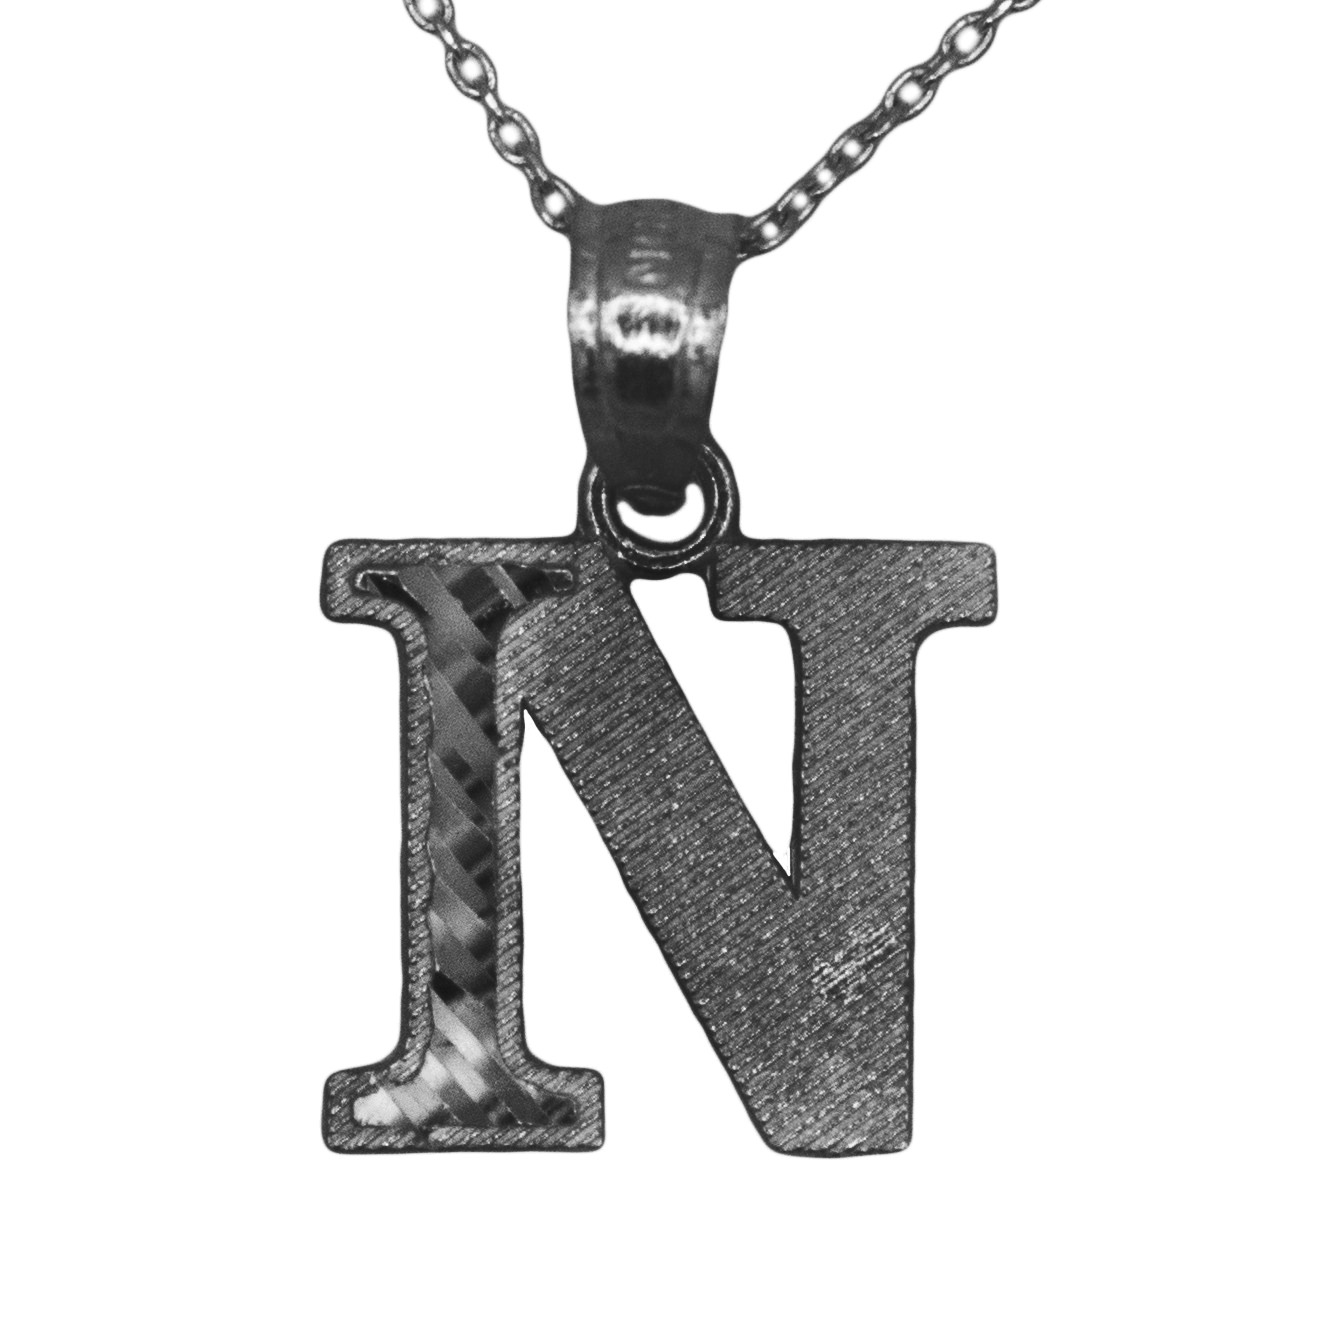 925 Black Rhodium Sterling Silver Letter N Initial with Diamond Cut Finish Pendant Necklace (No Chain)